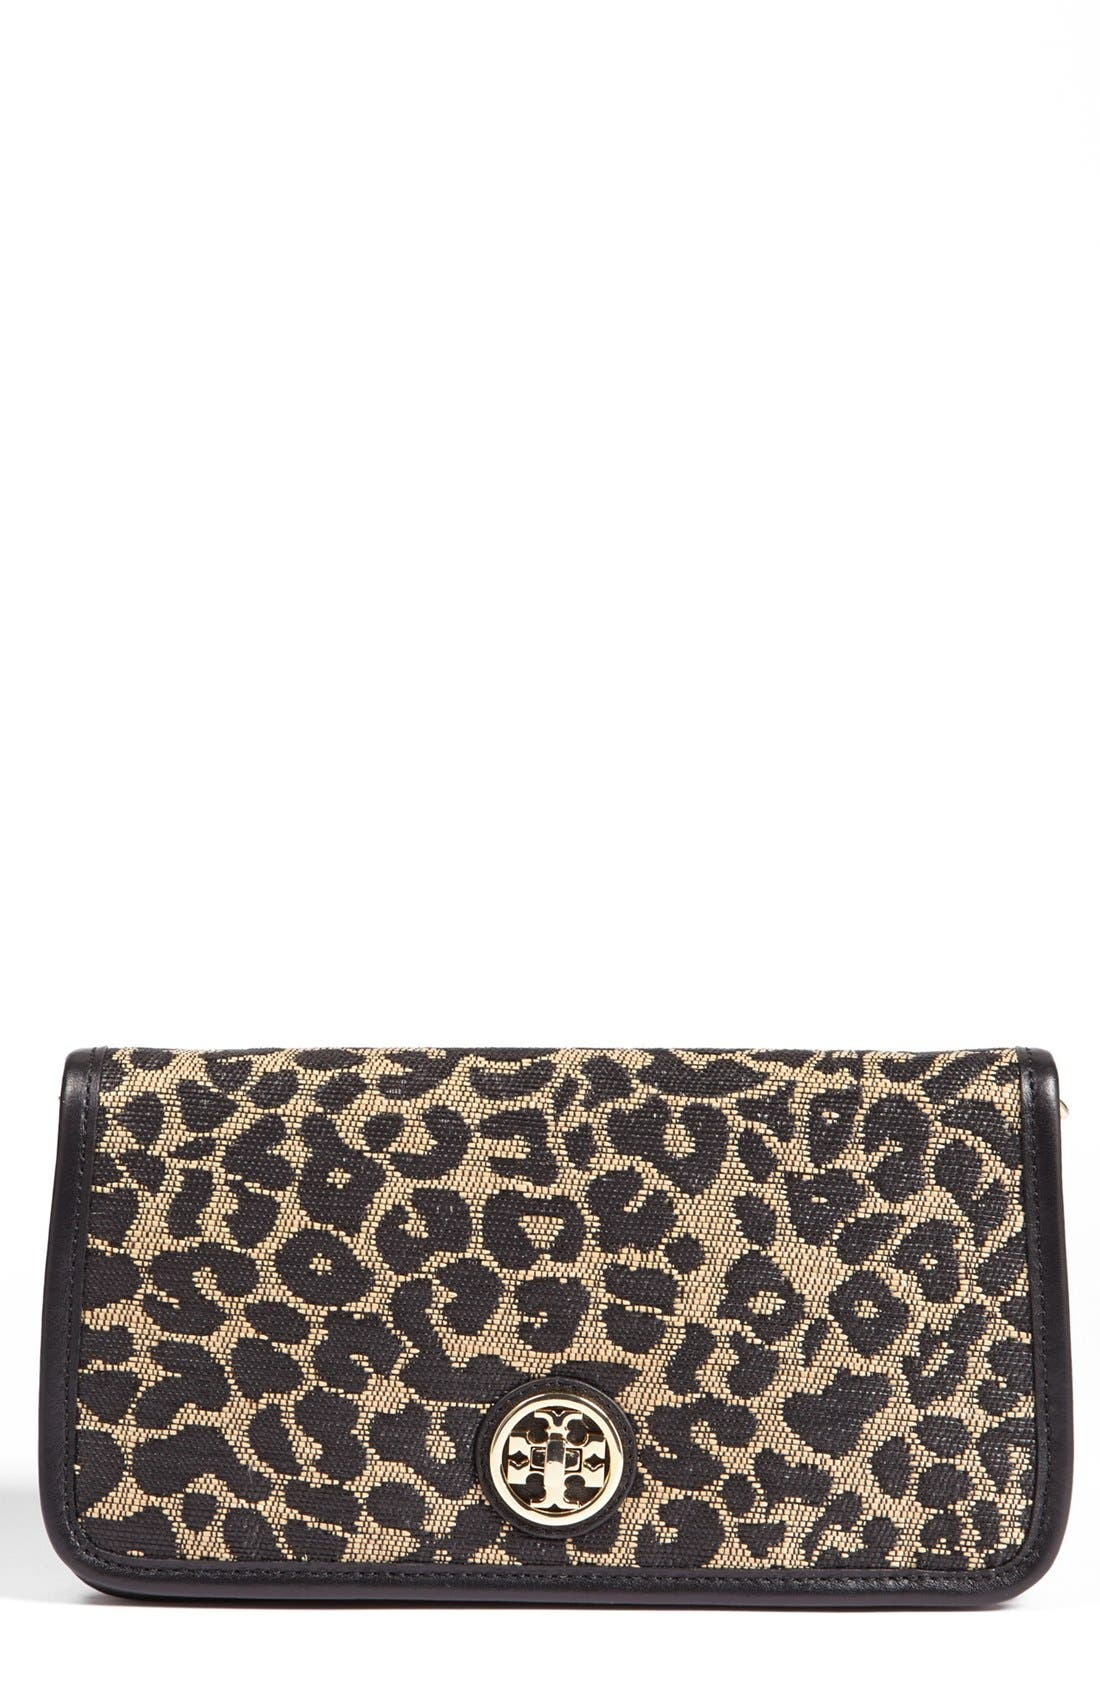 Alternate Image 1 Selected - Tory Burch 'Adalyn' Leopard Raffia Clutch